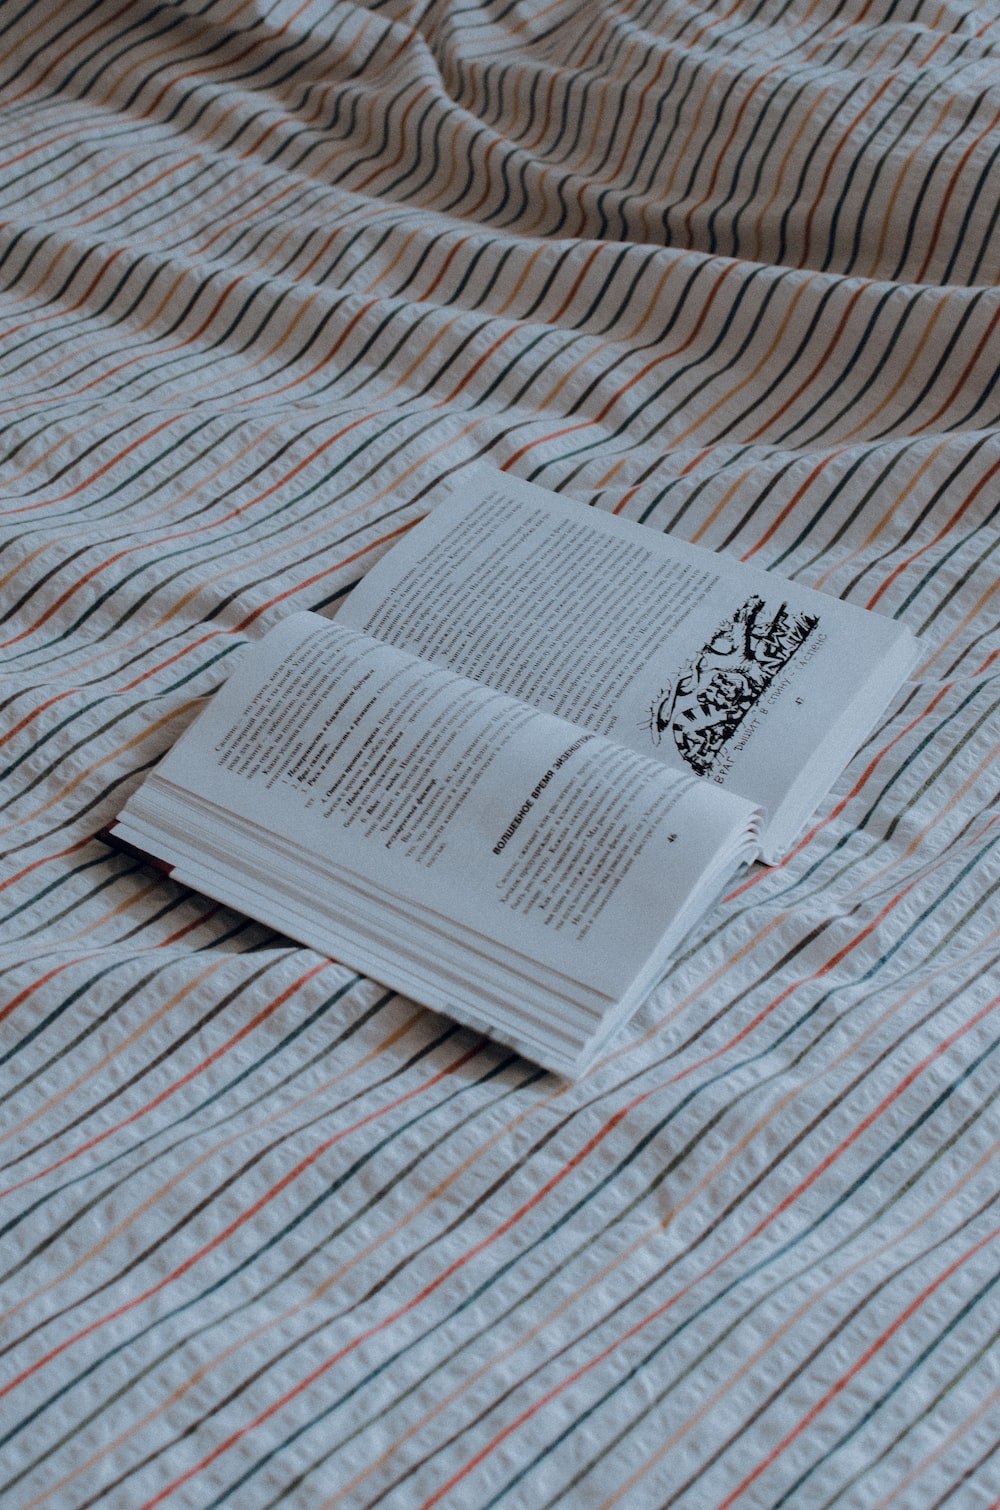 white paper on white and red textile